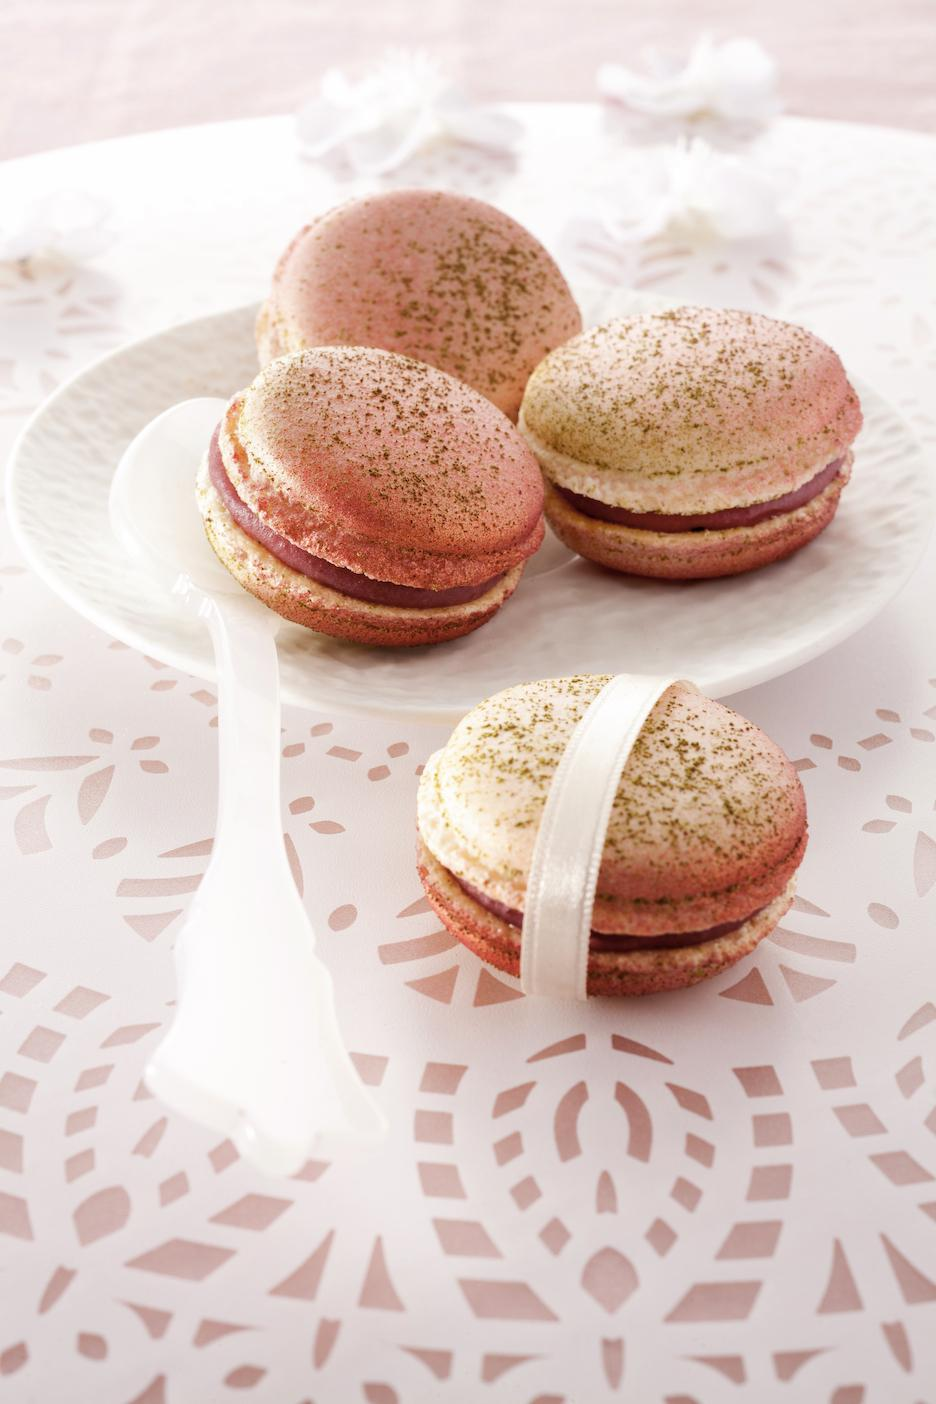 Macaroon by Cacao Barry